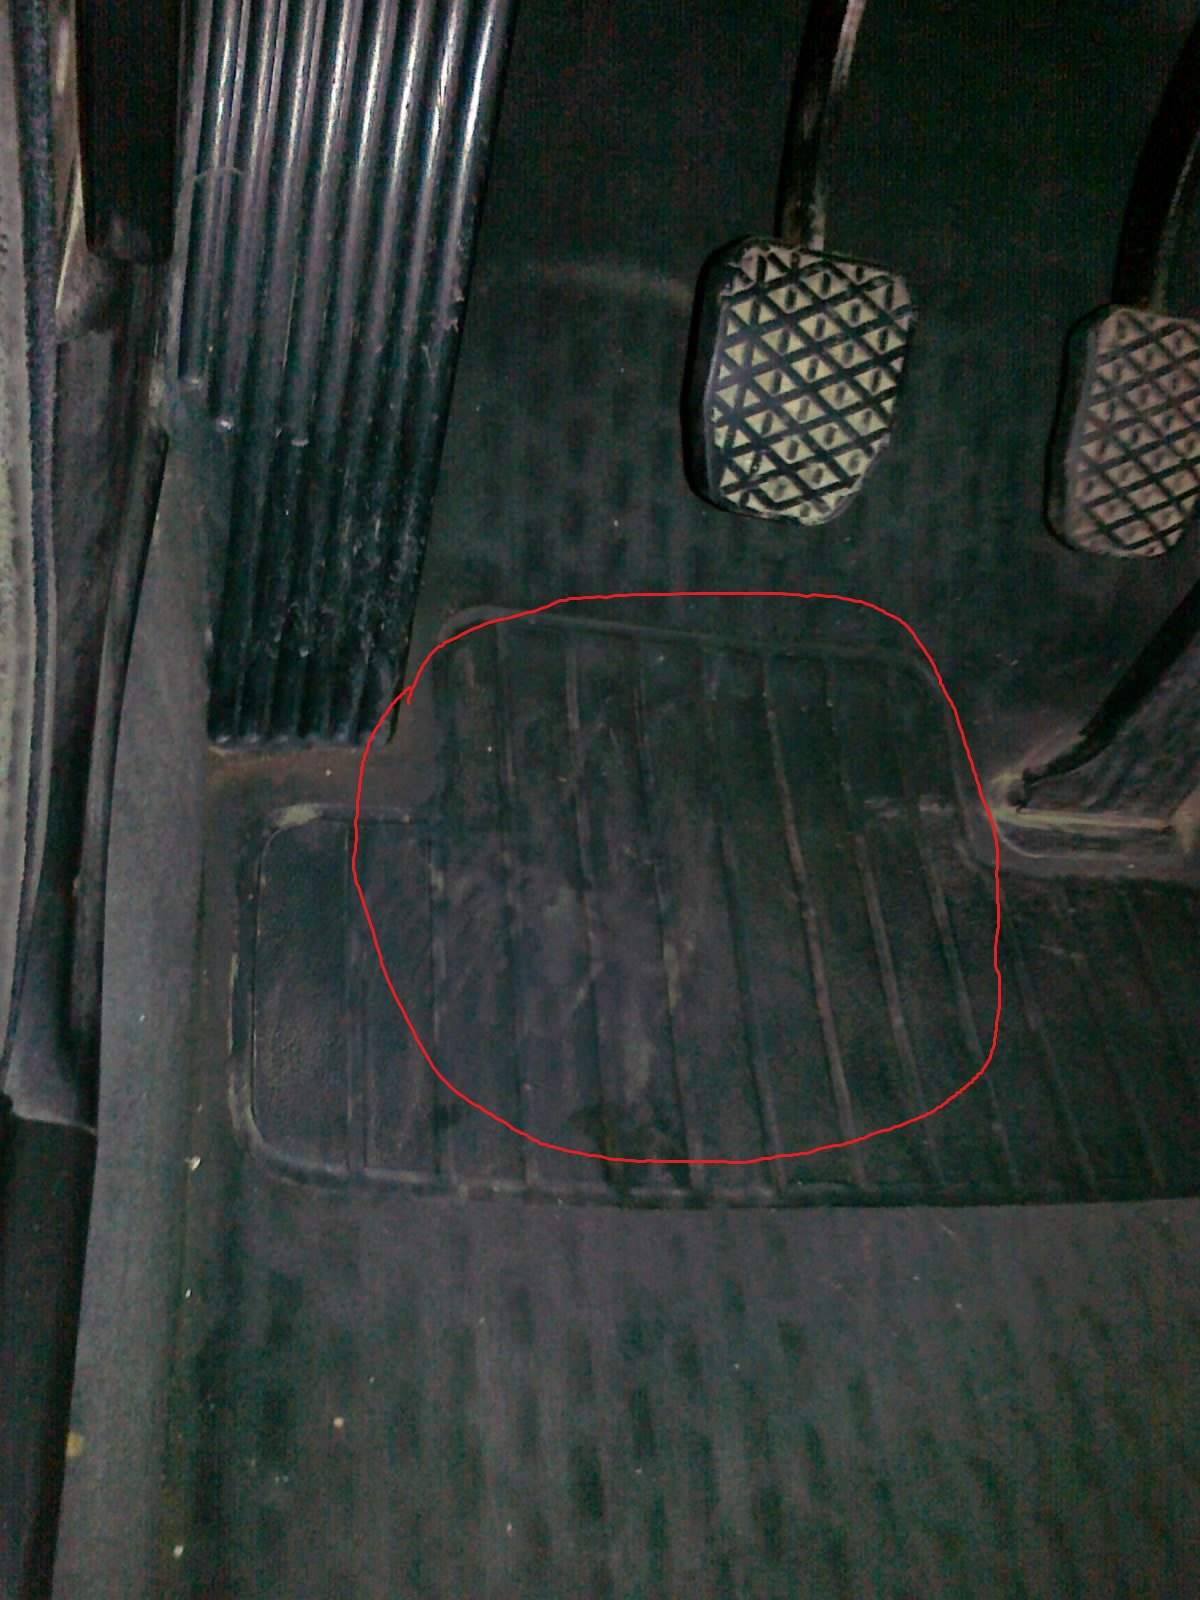 Water in driver\'s side footwell (no sunroof)